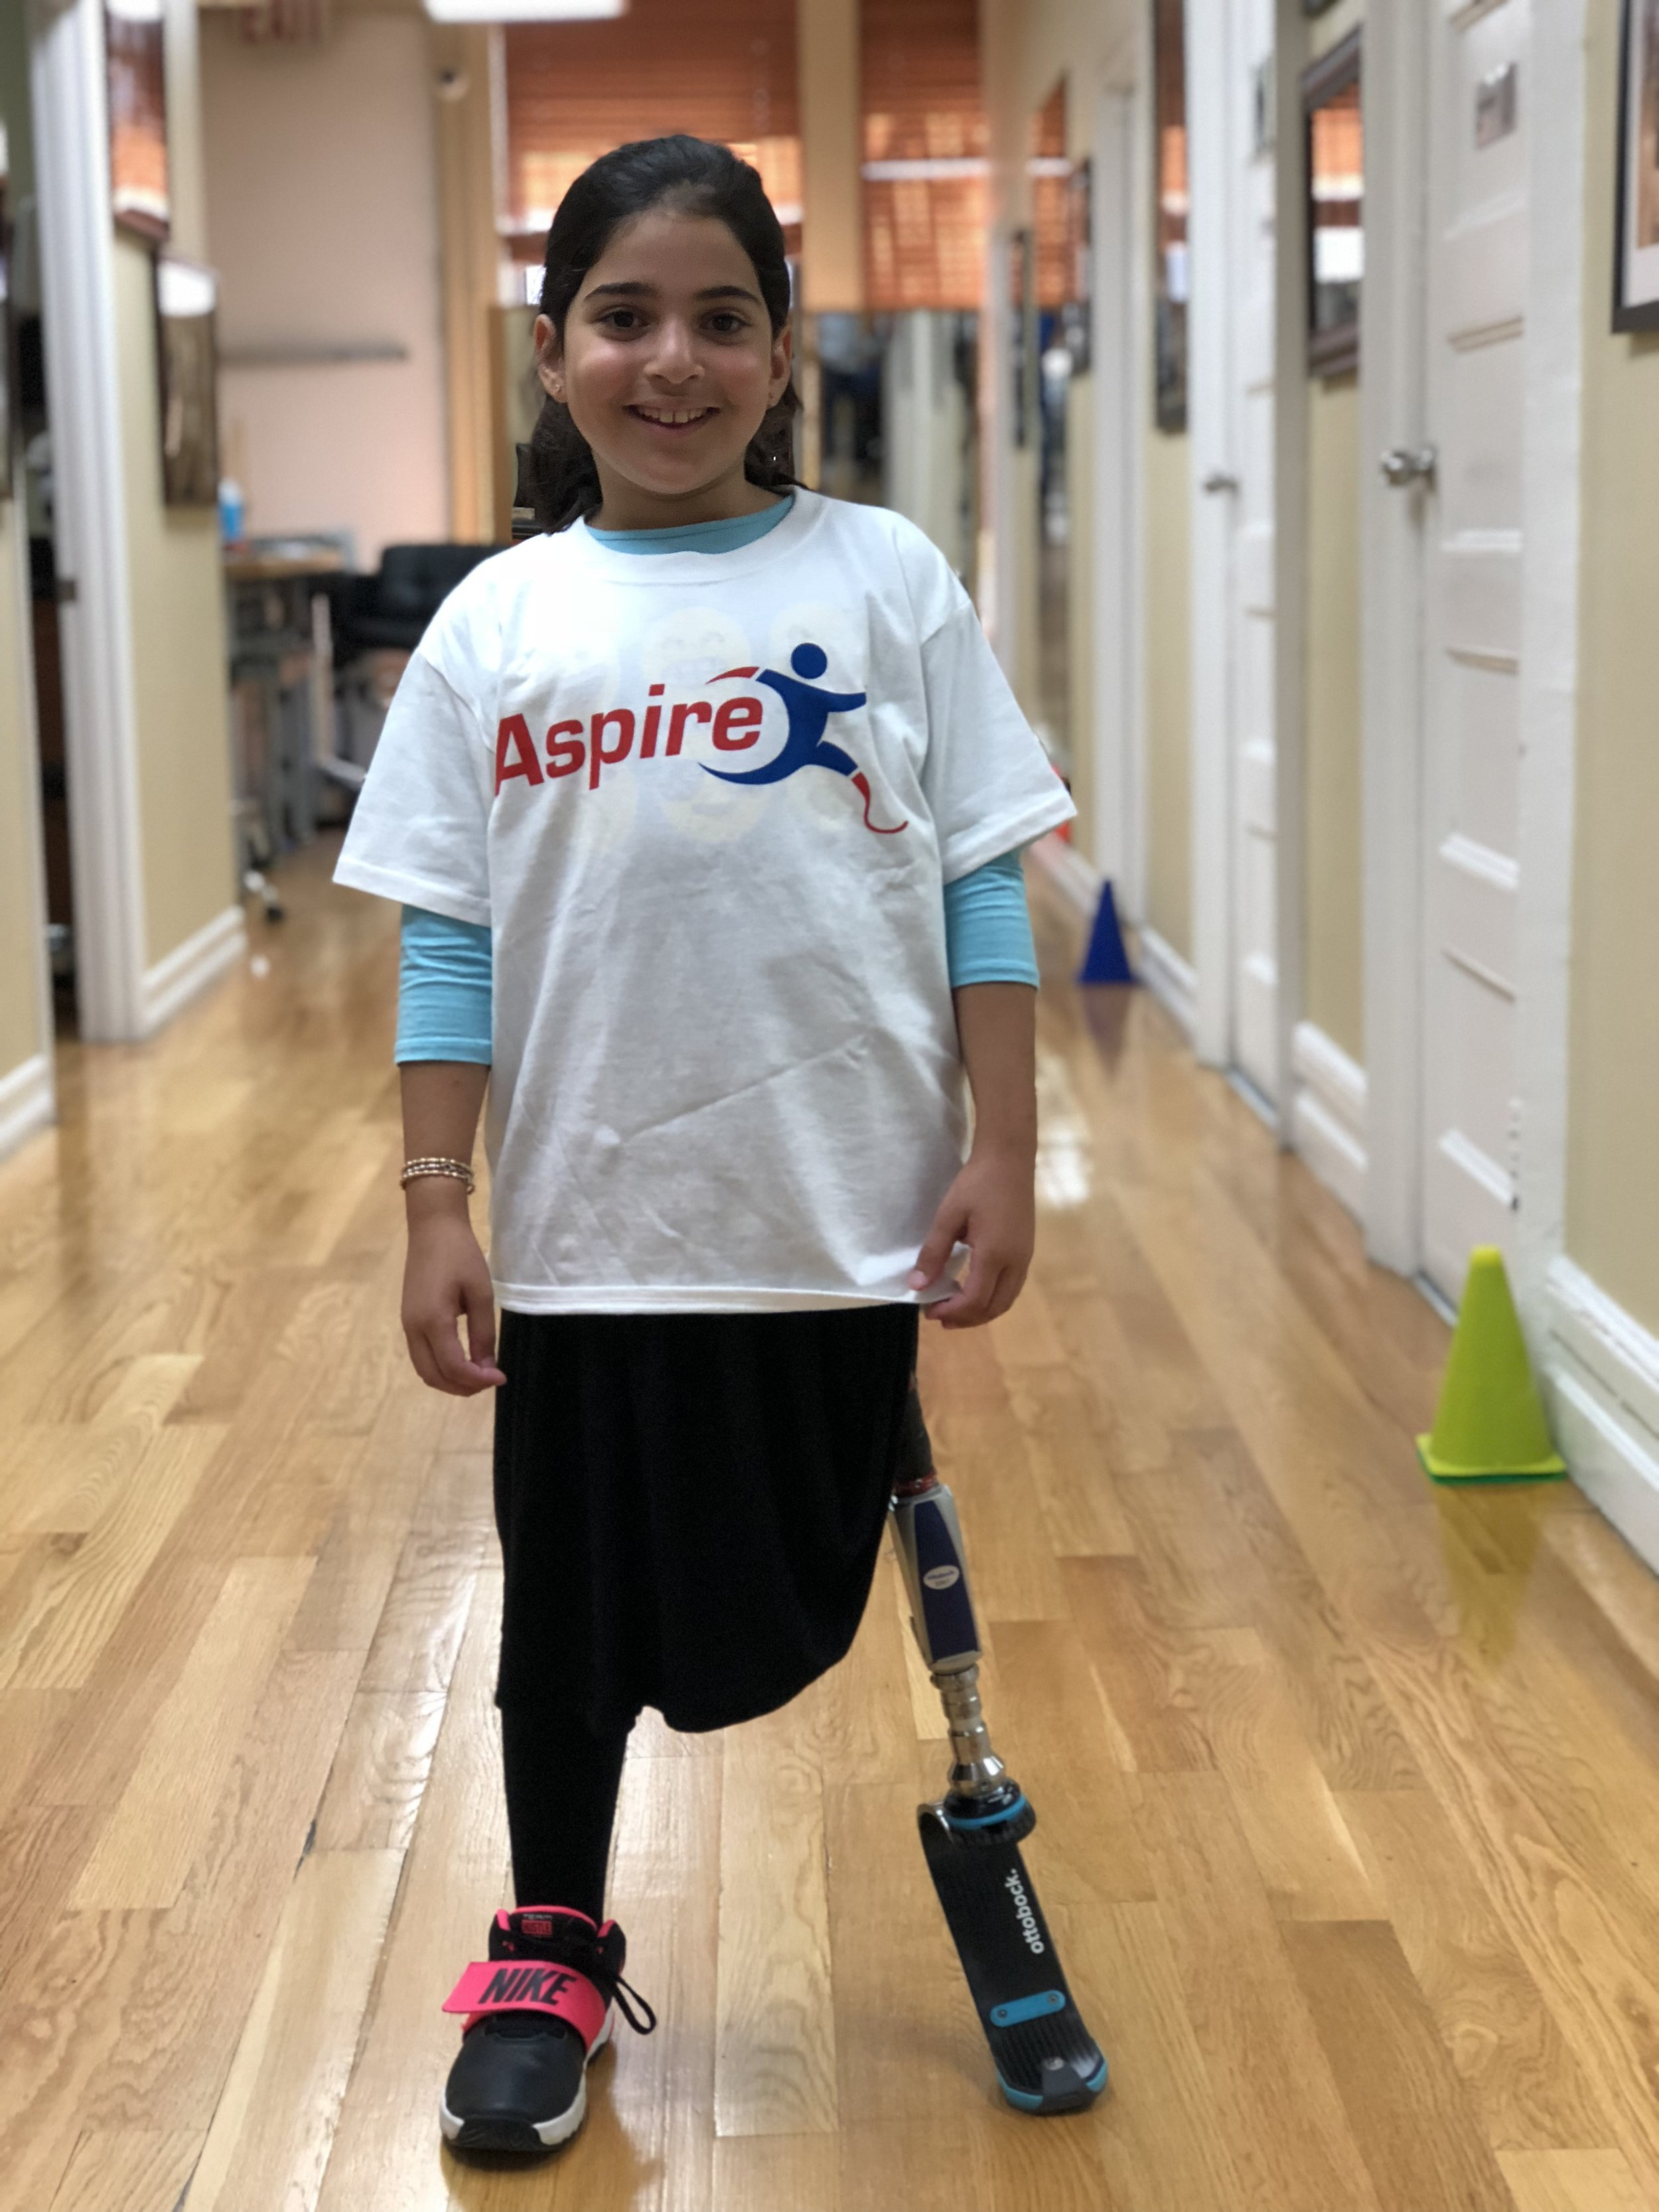 ASPIRE is committed  - to giving children and adults with limb loss the benefits of a physically active lifestyle through sports and exercise.